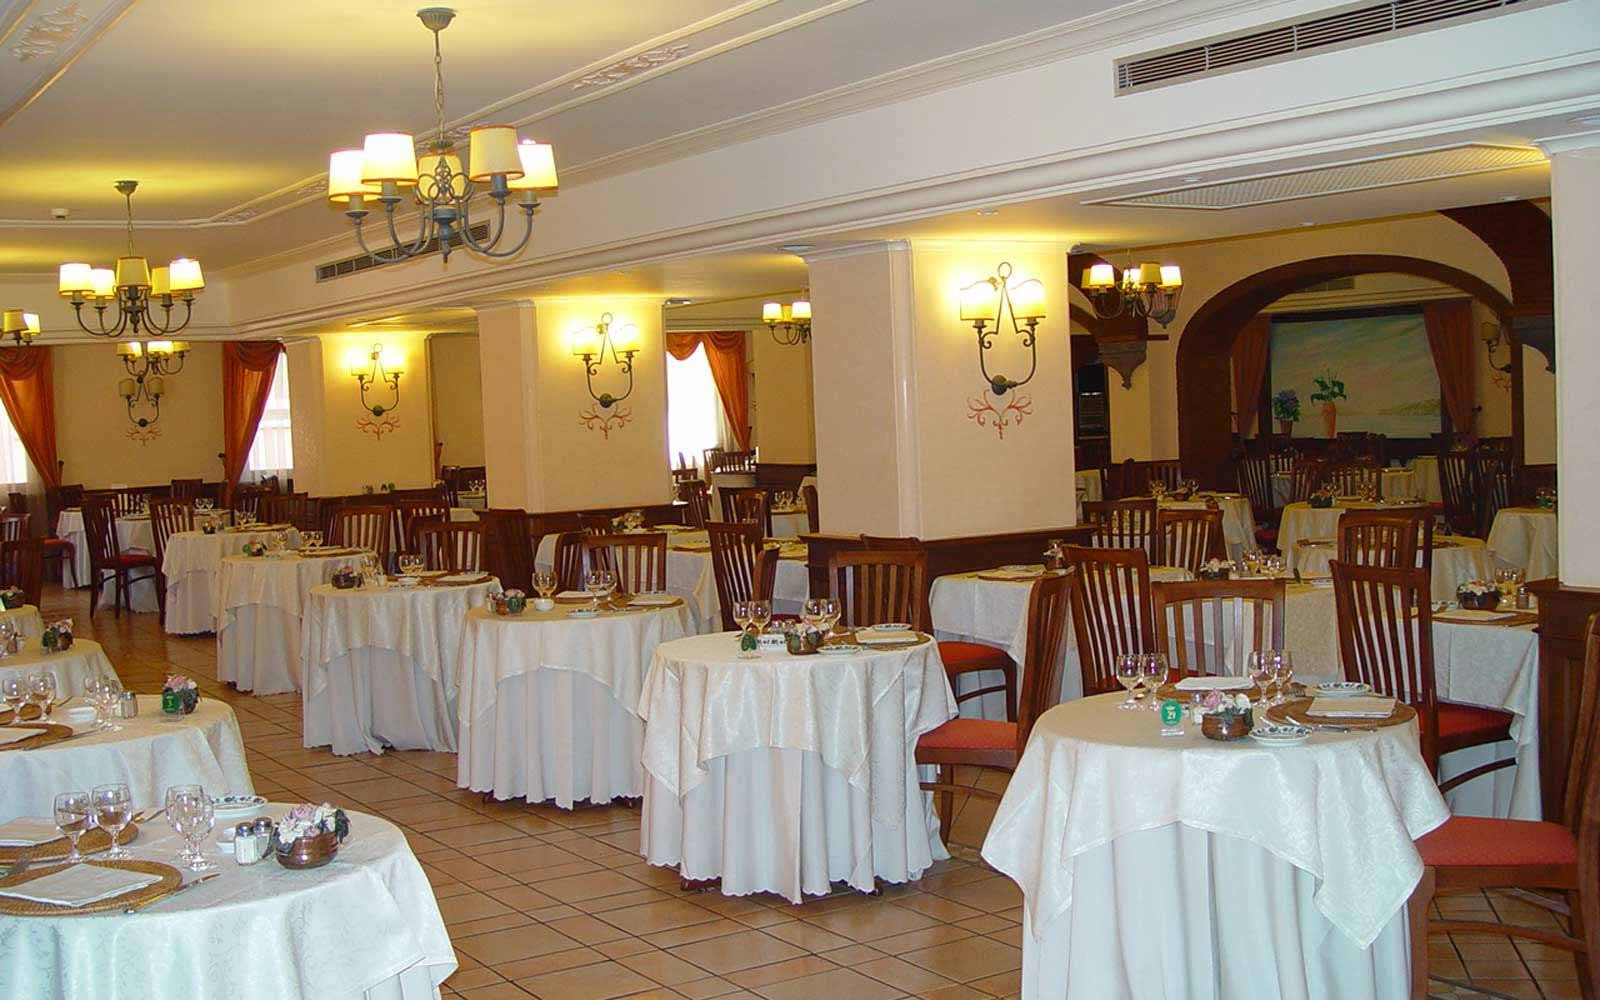 Airone restaurant at Hotel Michelangelo